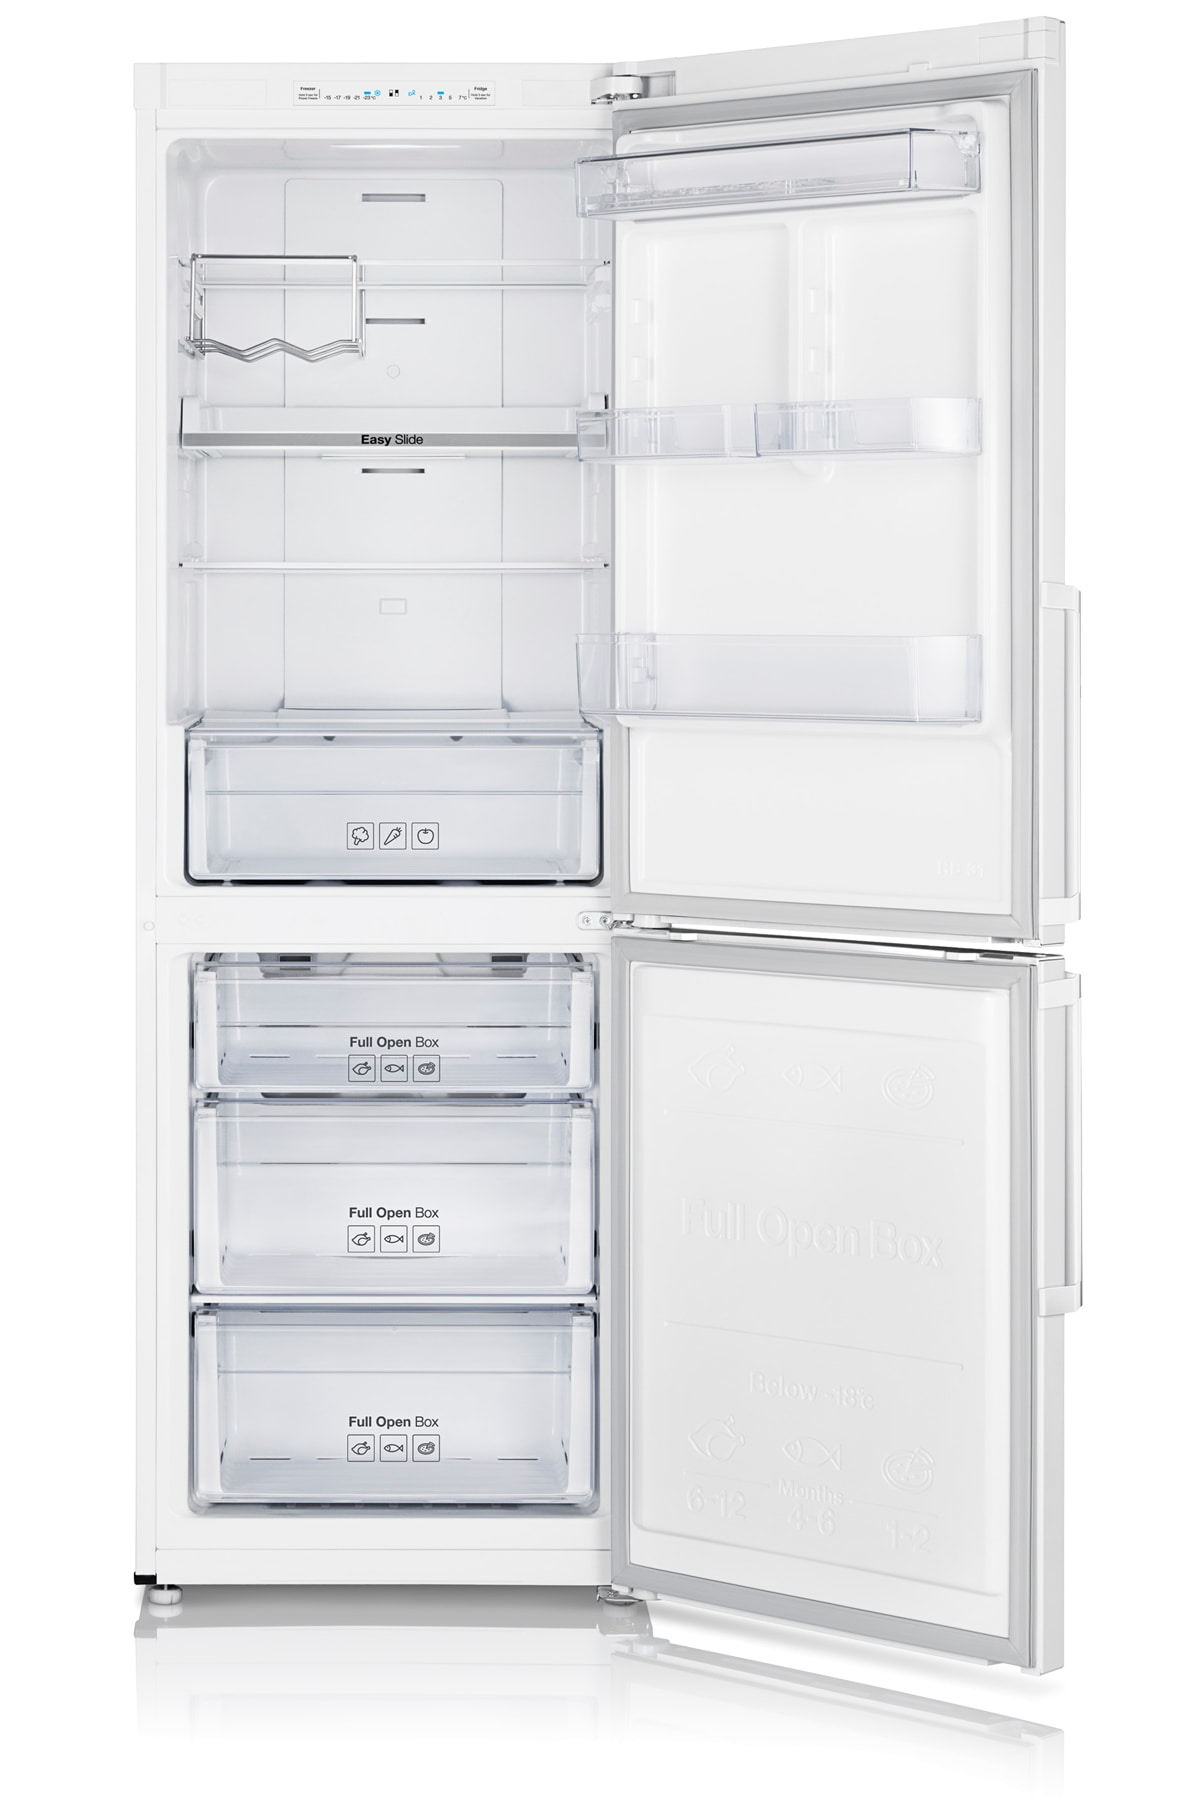 RB29FSJNDWW Fridge Freezer Front Open White